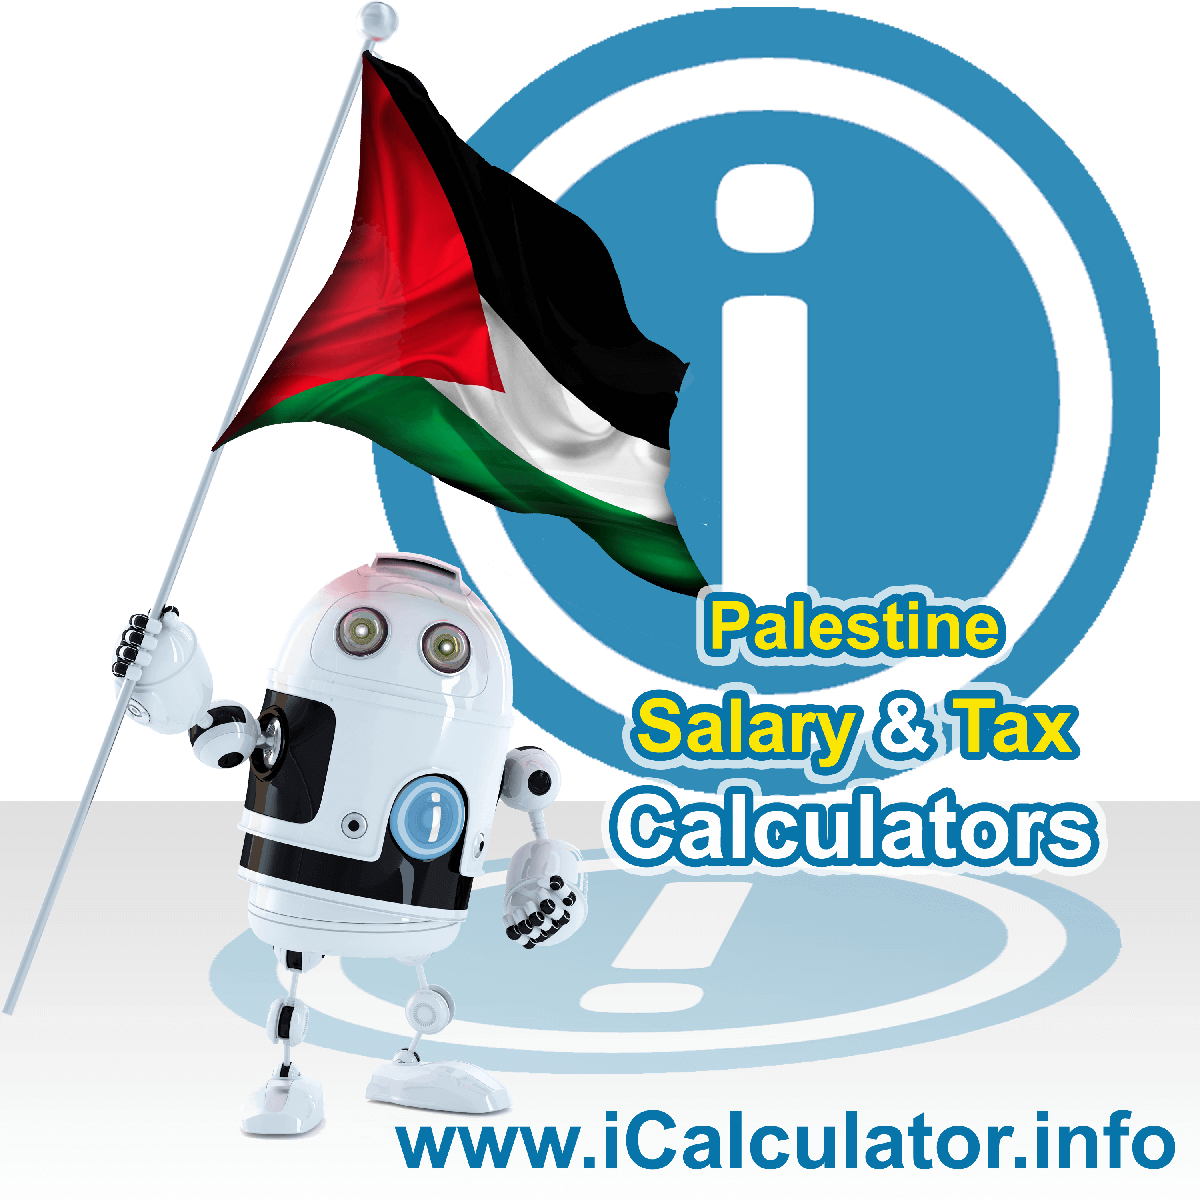 Palestine Wage Calculator. This image shows the Palestine flag and information relating to the tax formula for the Palestine Tax Calculator